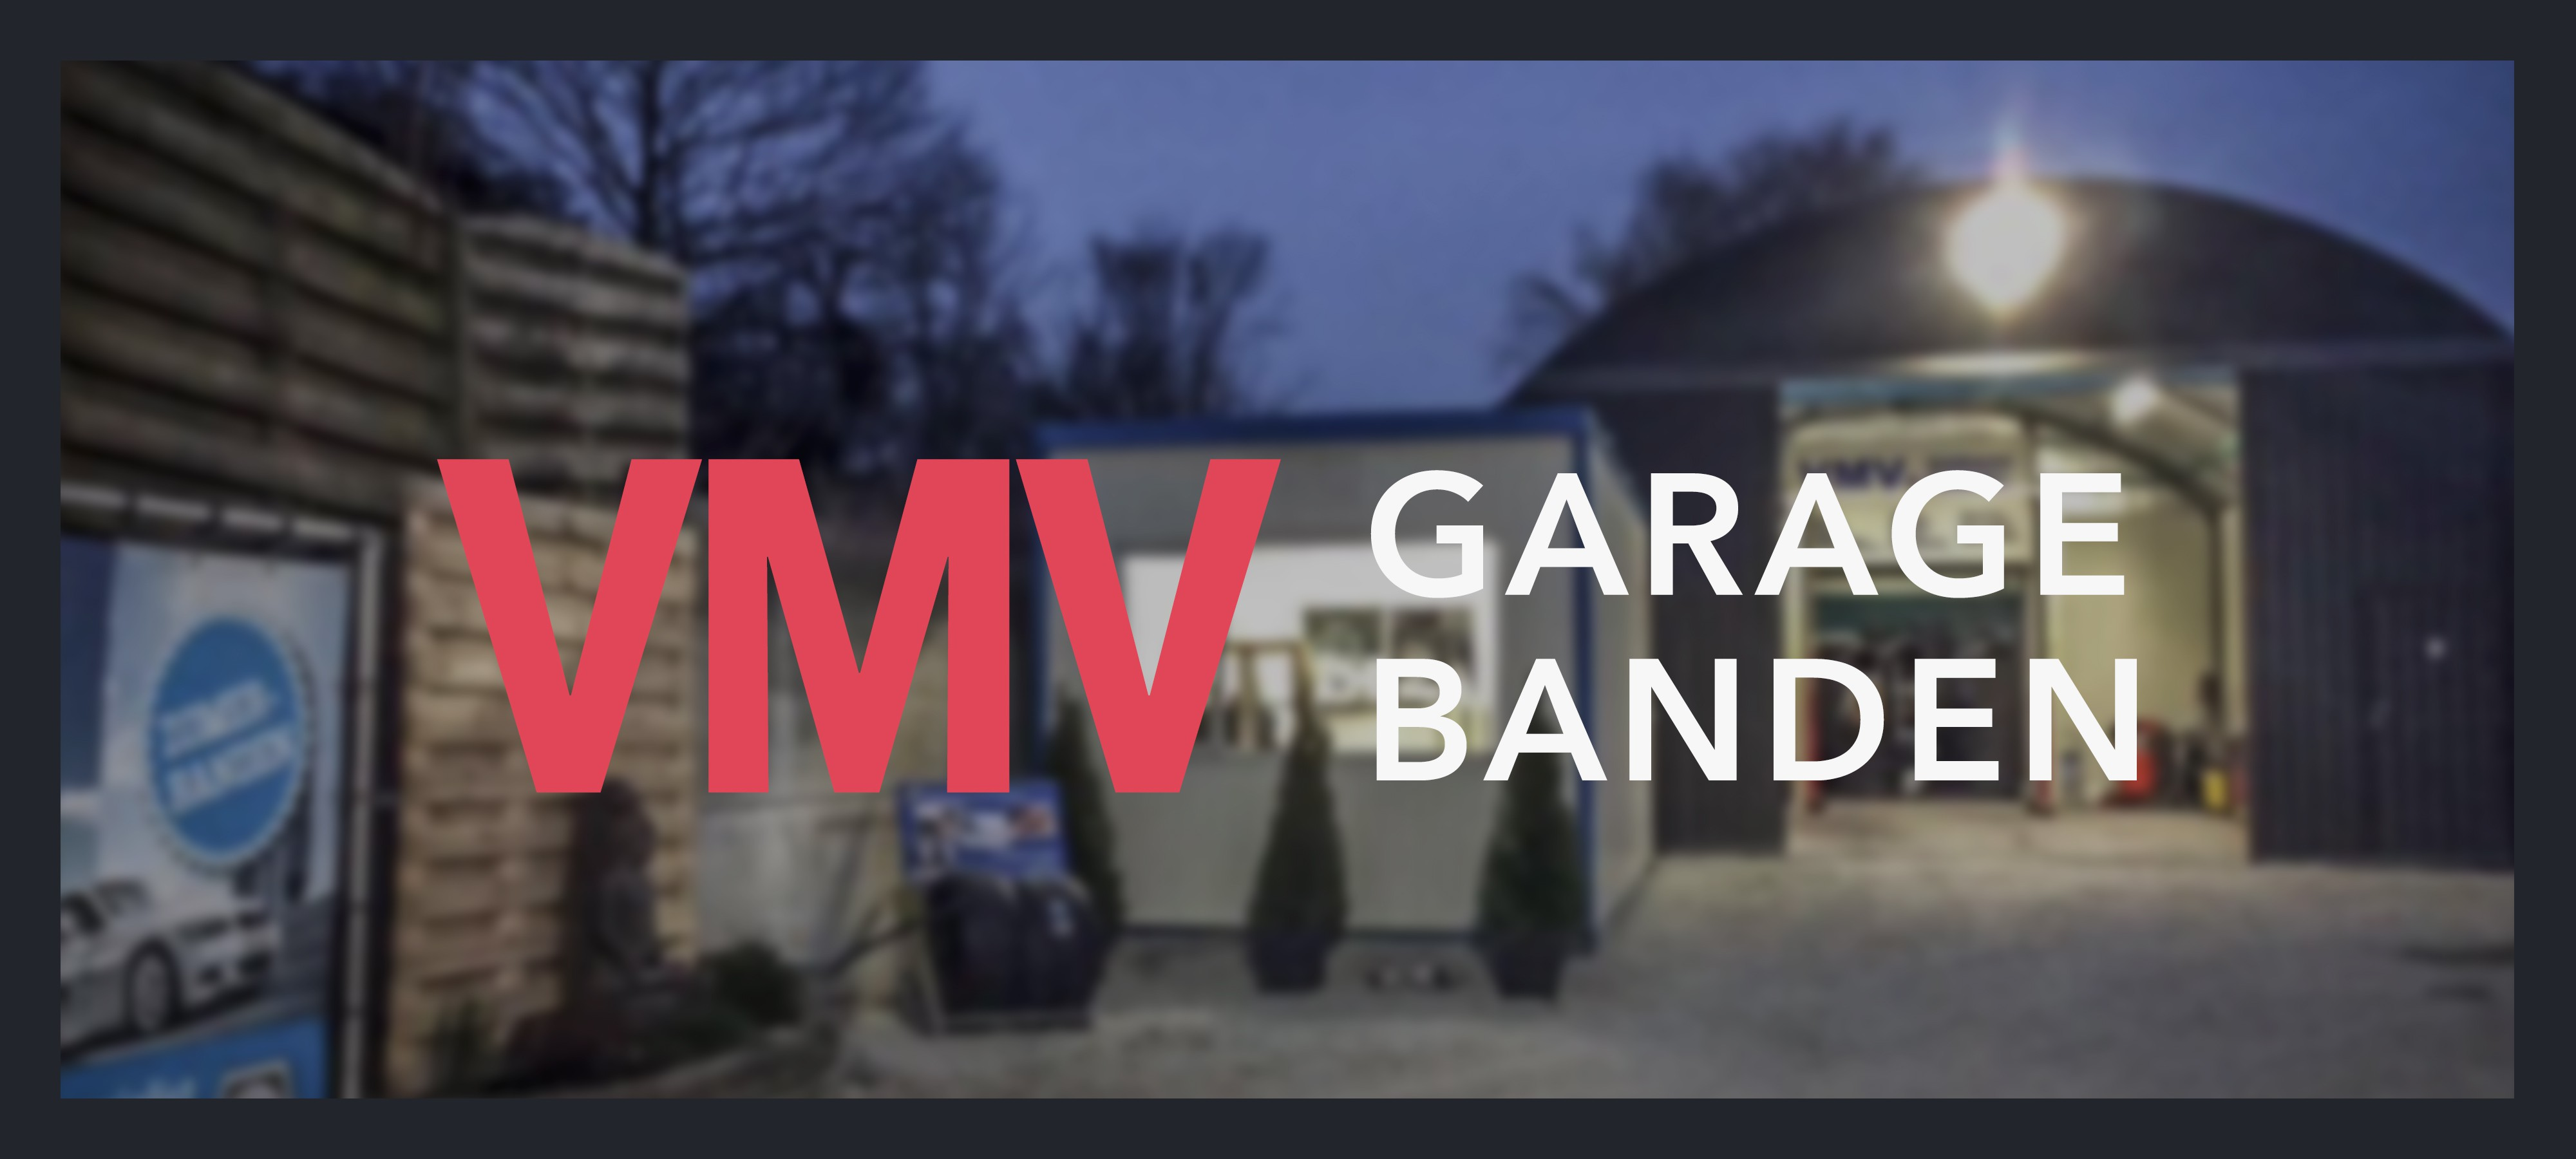 Header Bandencenter VMV - Garage Haaltert